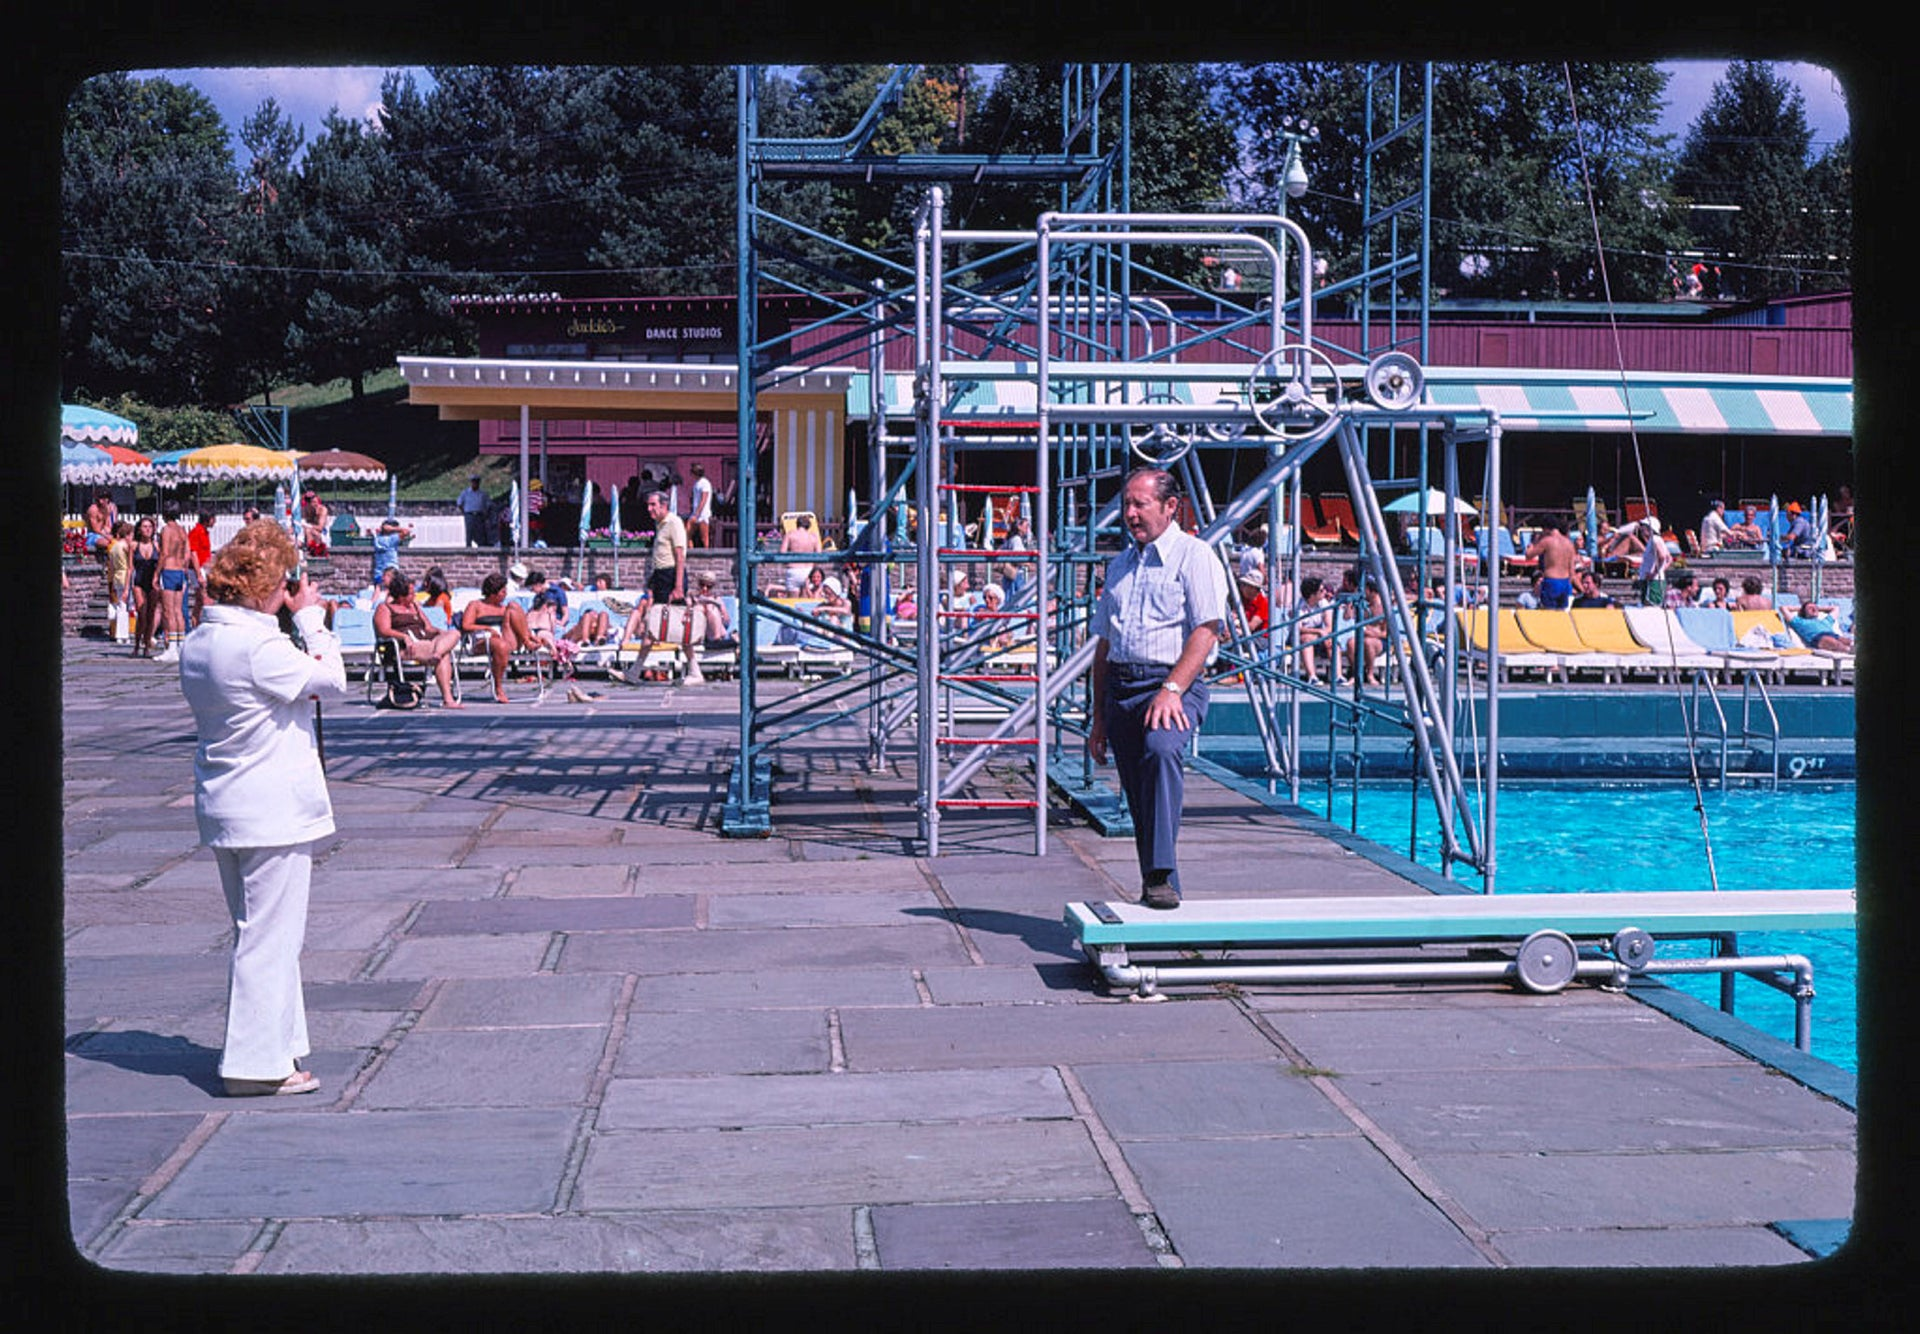 Grossinger's pool area snapshot, Liberty, New York, in 1977.